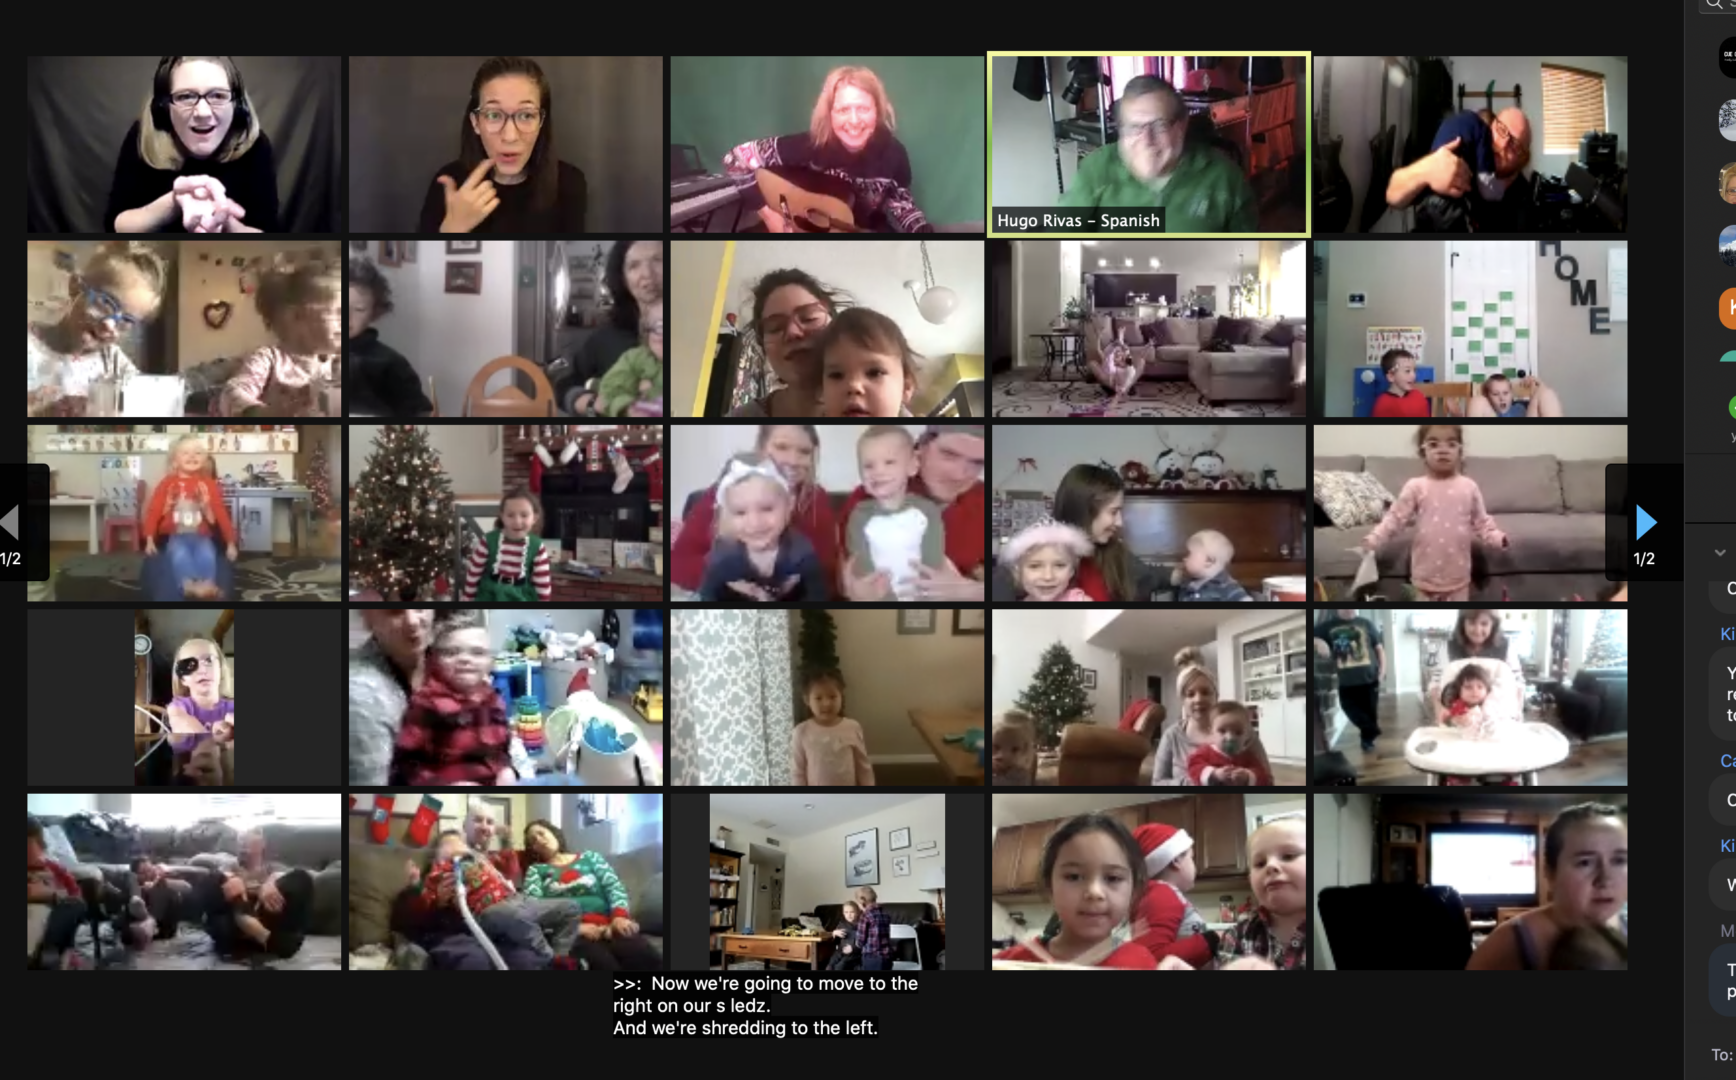 a picture of a group video call